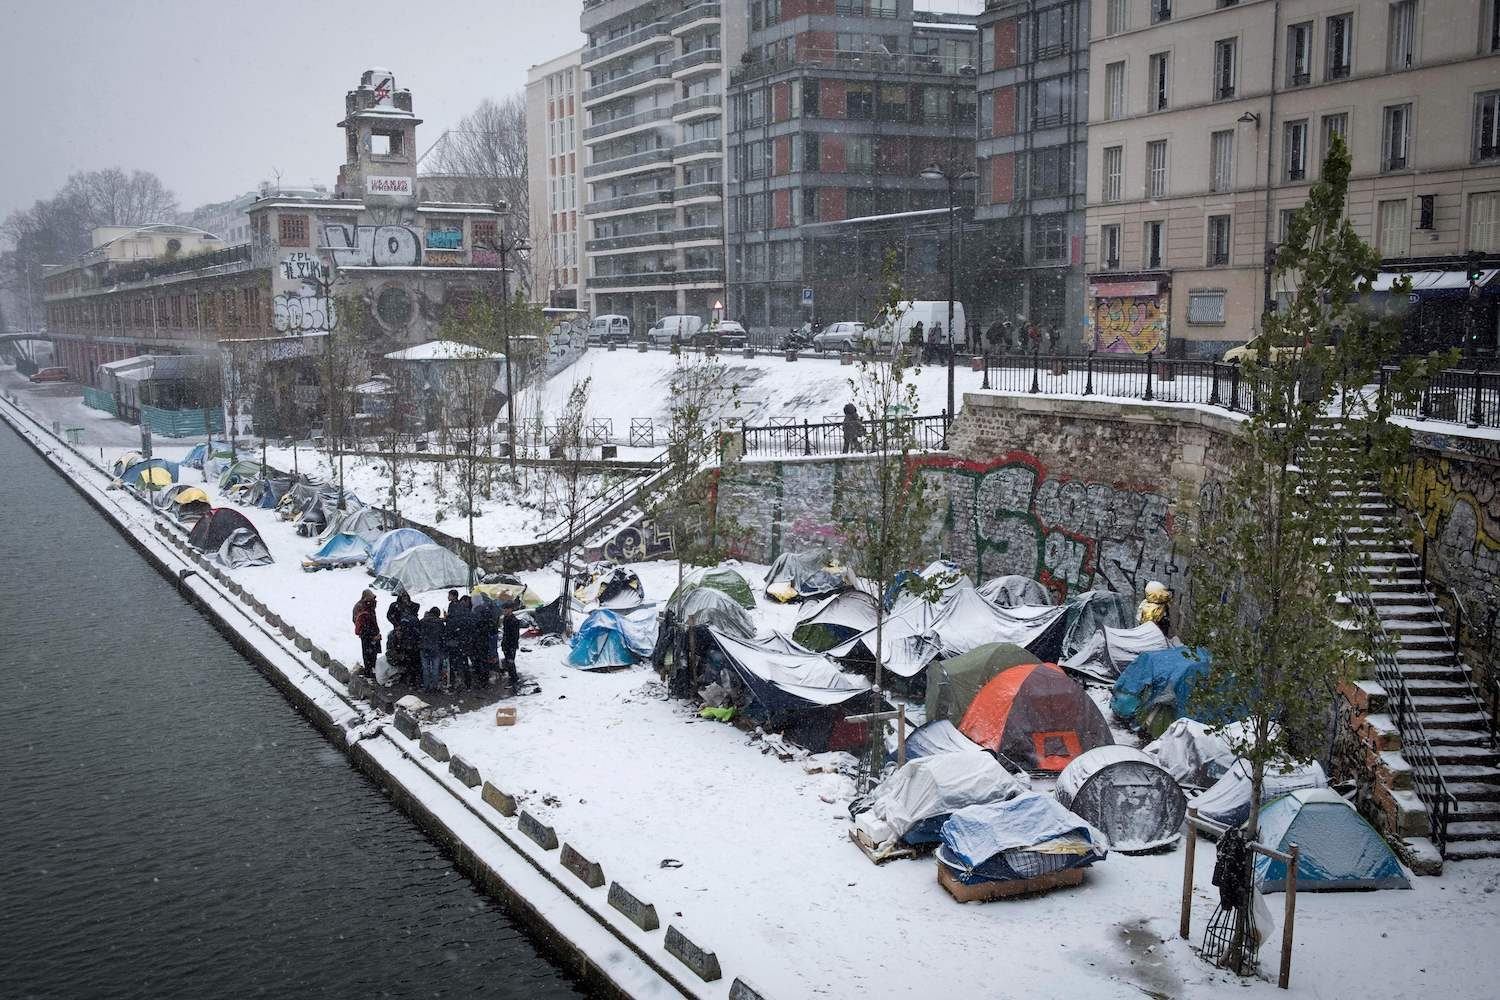 Afghan refugees gather in a makeshift camp as snow falls in Paris on February 9, 2018. The north-west of France has received fresh snowfall, affecting transport in the Ile-de-France region especially in Paris. / AFP PHOTO / JOEL SAGET        (Photo credit should read JOEL SAGET/AFP/Getty Images)